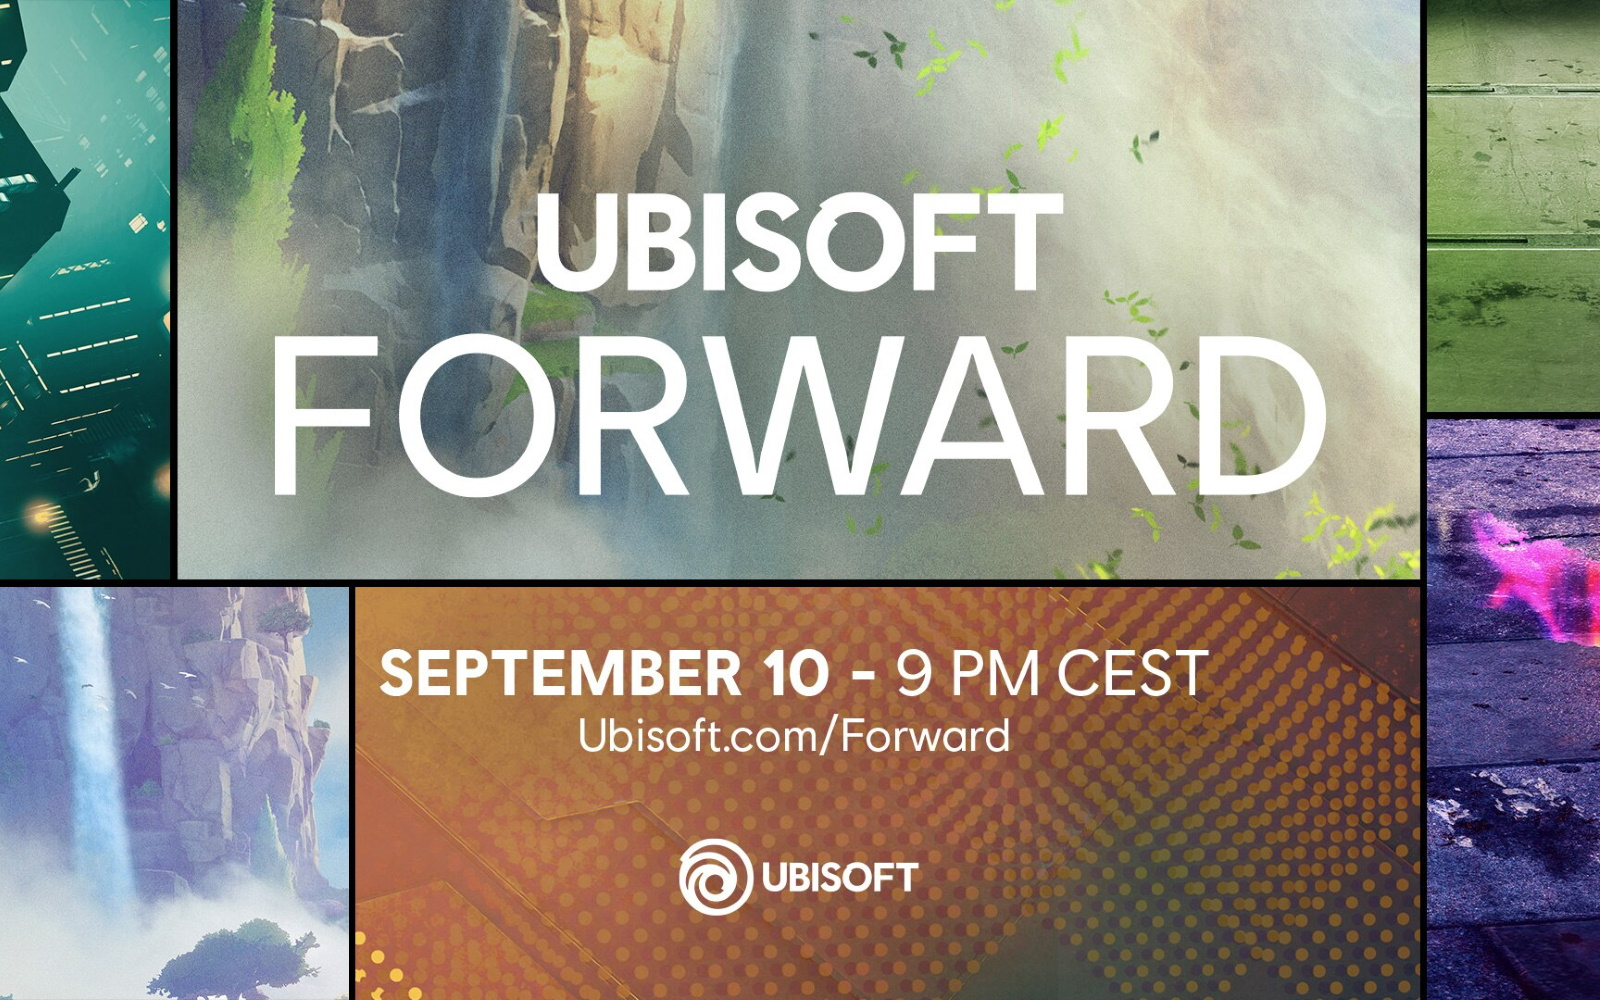 The Next Ubisoft Forward Event Announced For September 10th